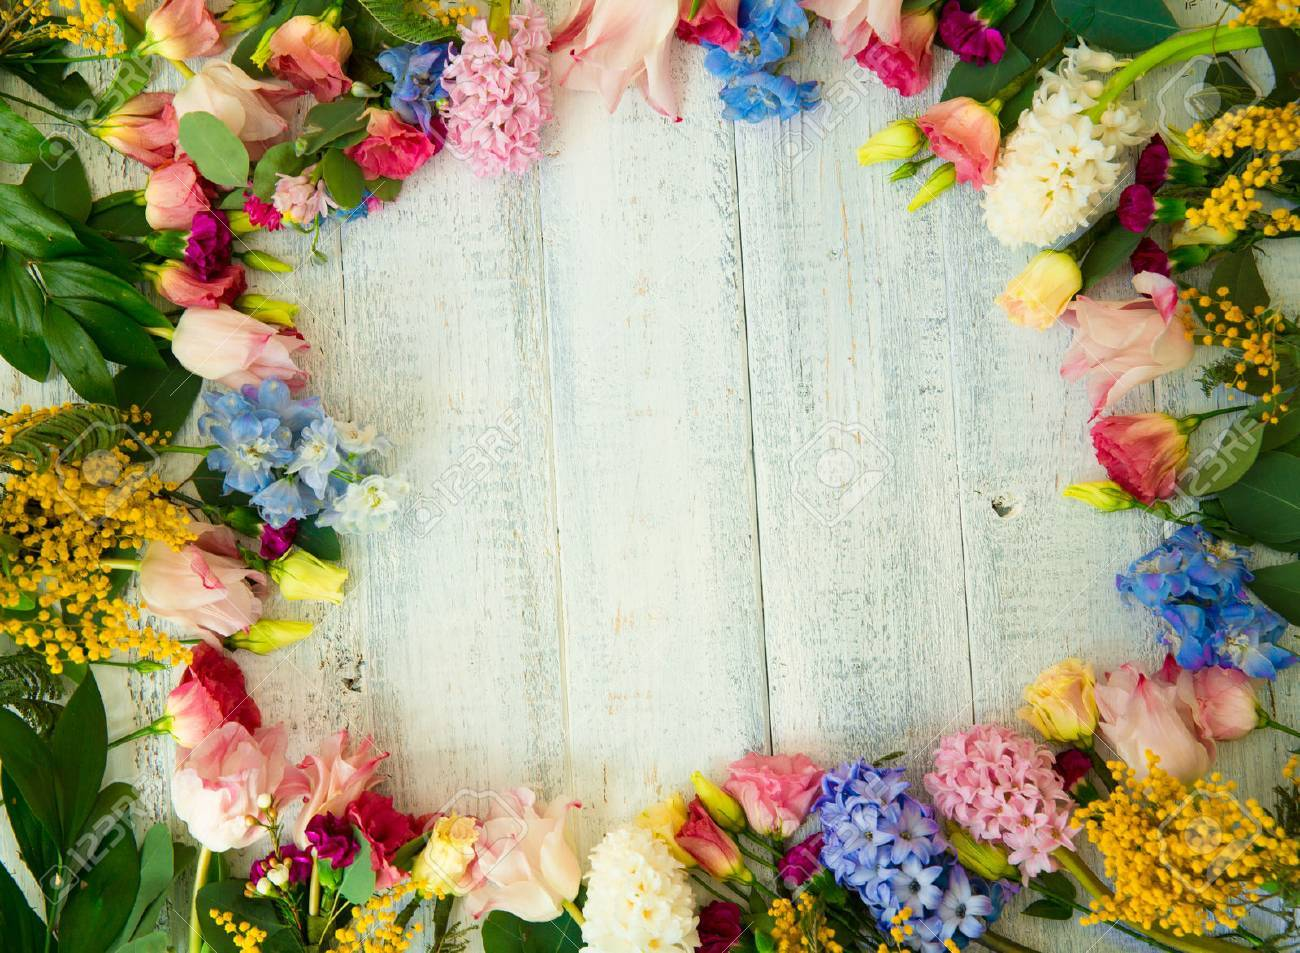 Spring flowers on wood background. Summer blooming border on a wooden table. - 72590180